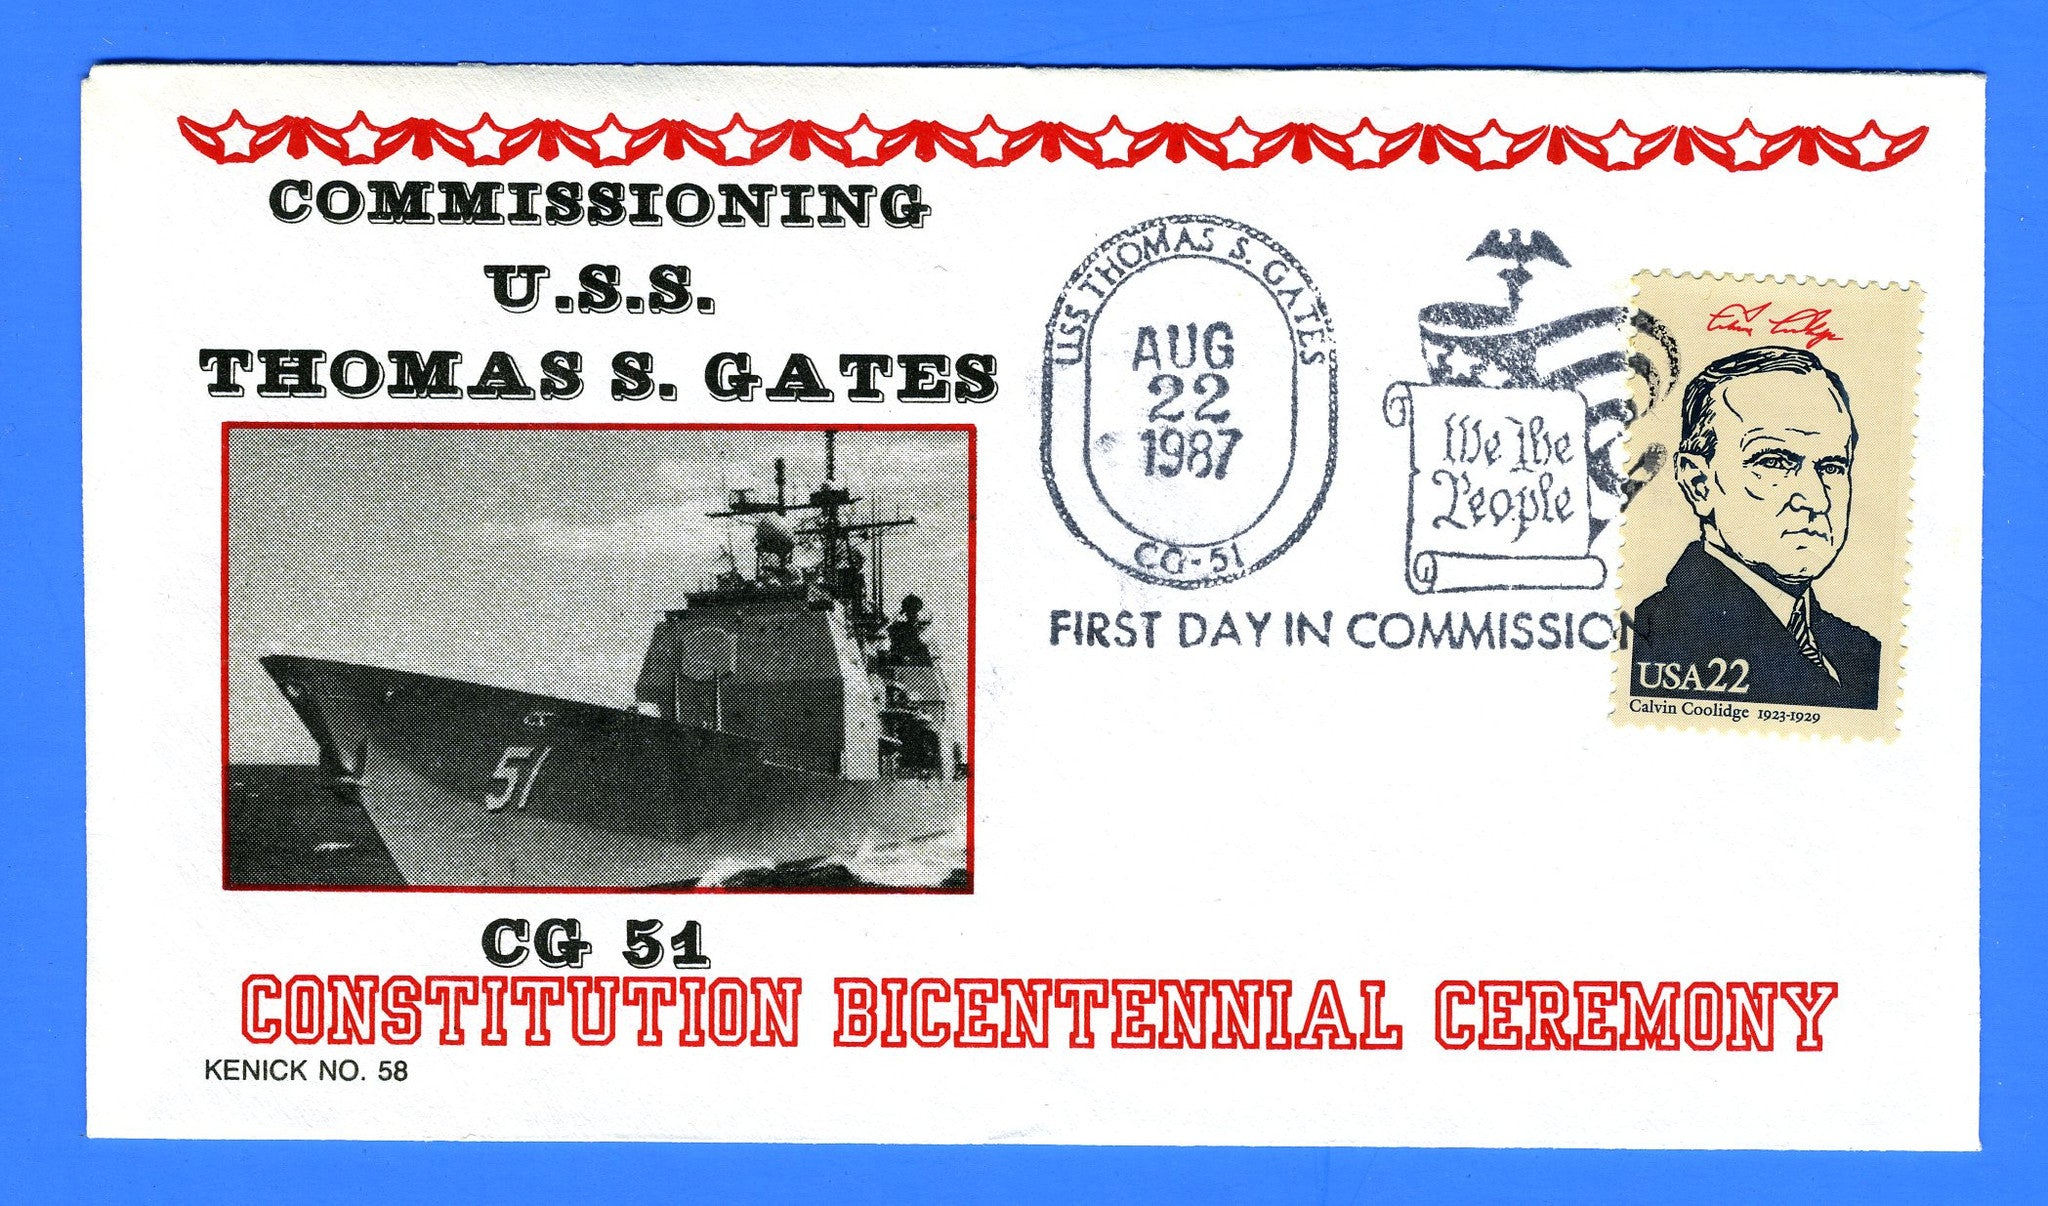 USS Thomas S Gates CG-51 Commissioned August 22, 1987